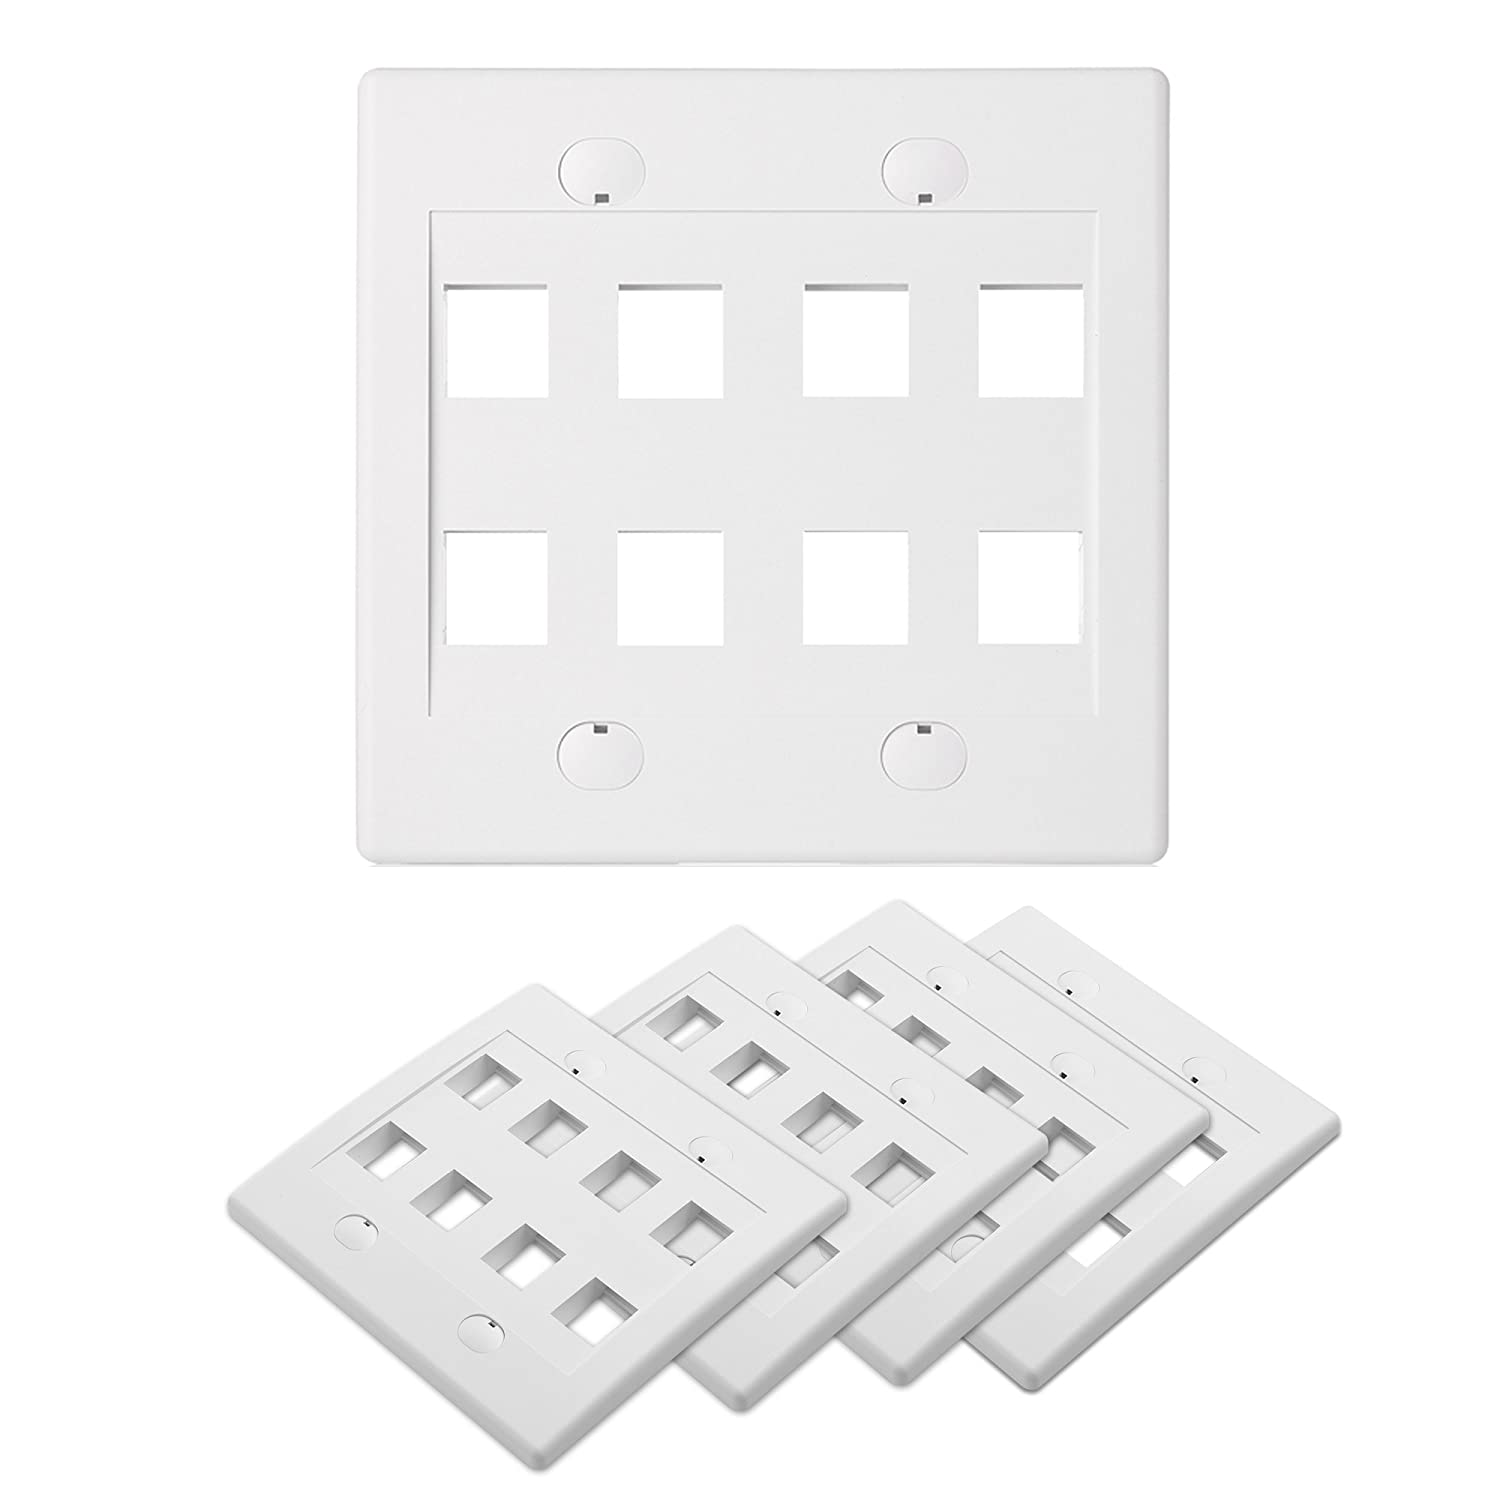 B018H9Y7DQ Cable Matters UL Listed 5-Pack 8 Port Keystone Wall Plate (Ethernet Wall Plate) in White 71Od2wPtu-L